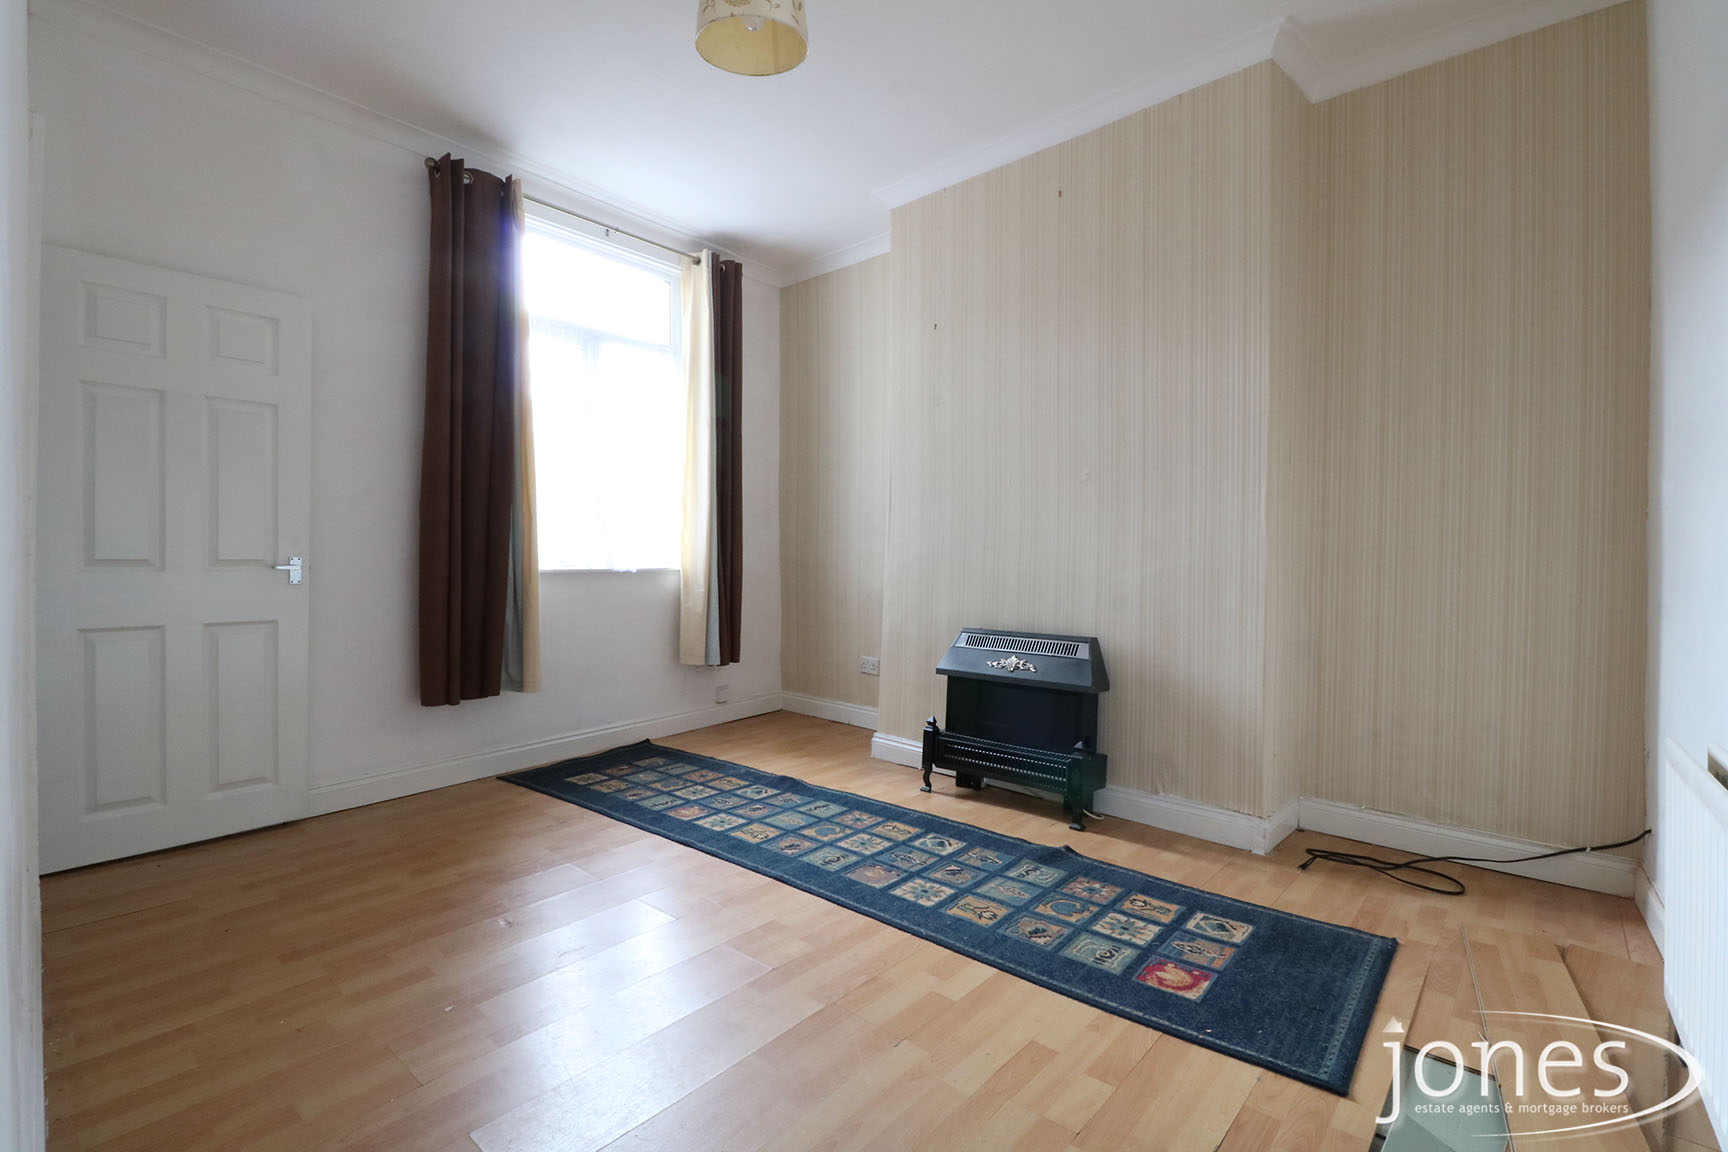 Home for Sale Let - Photo 03 Gilmour Street, Thornaby, Stockton on Tees, TS17 6JR